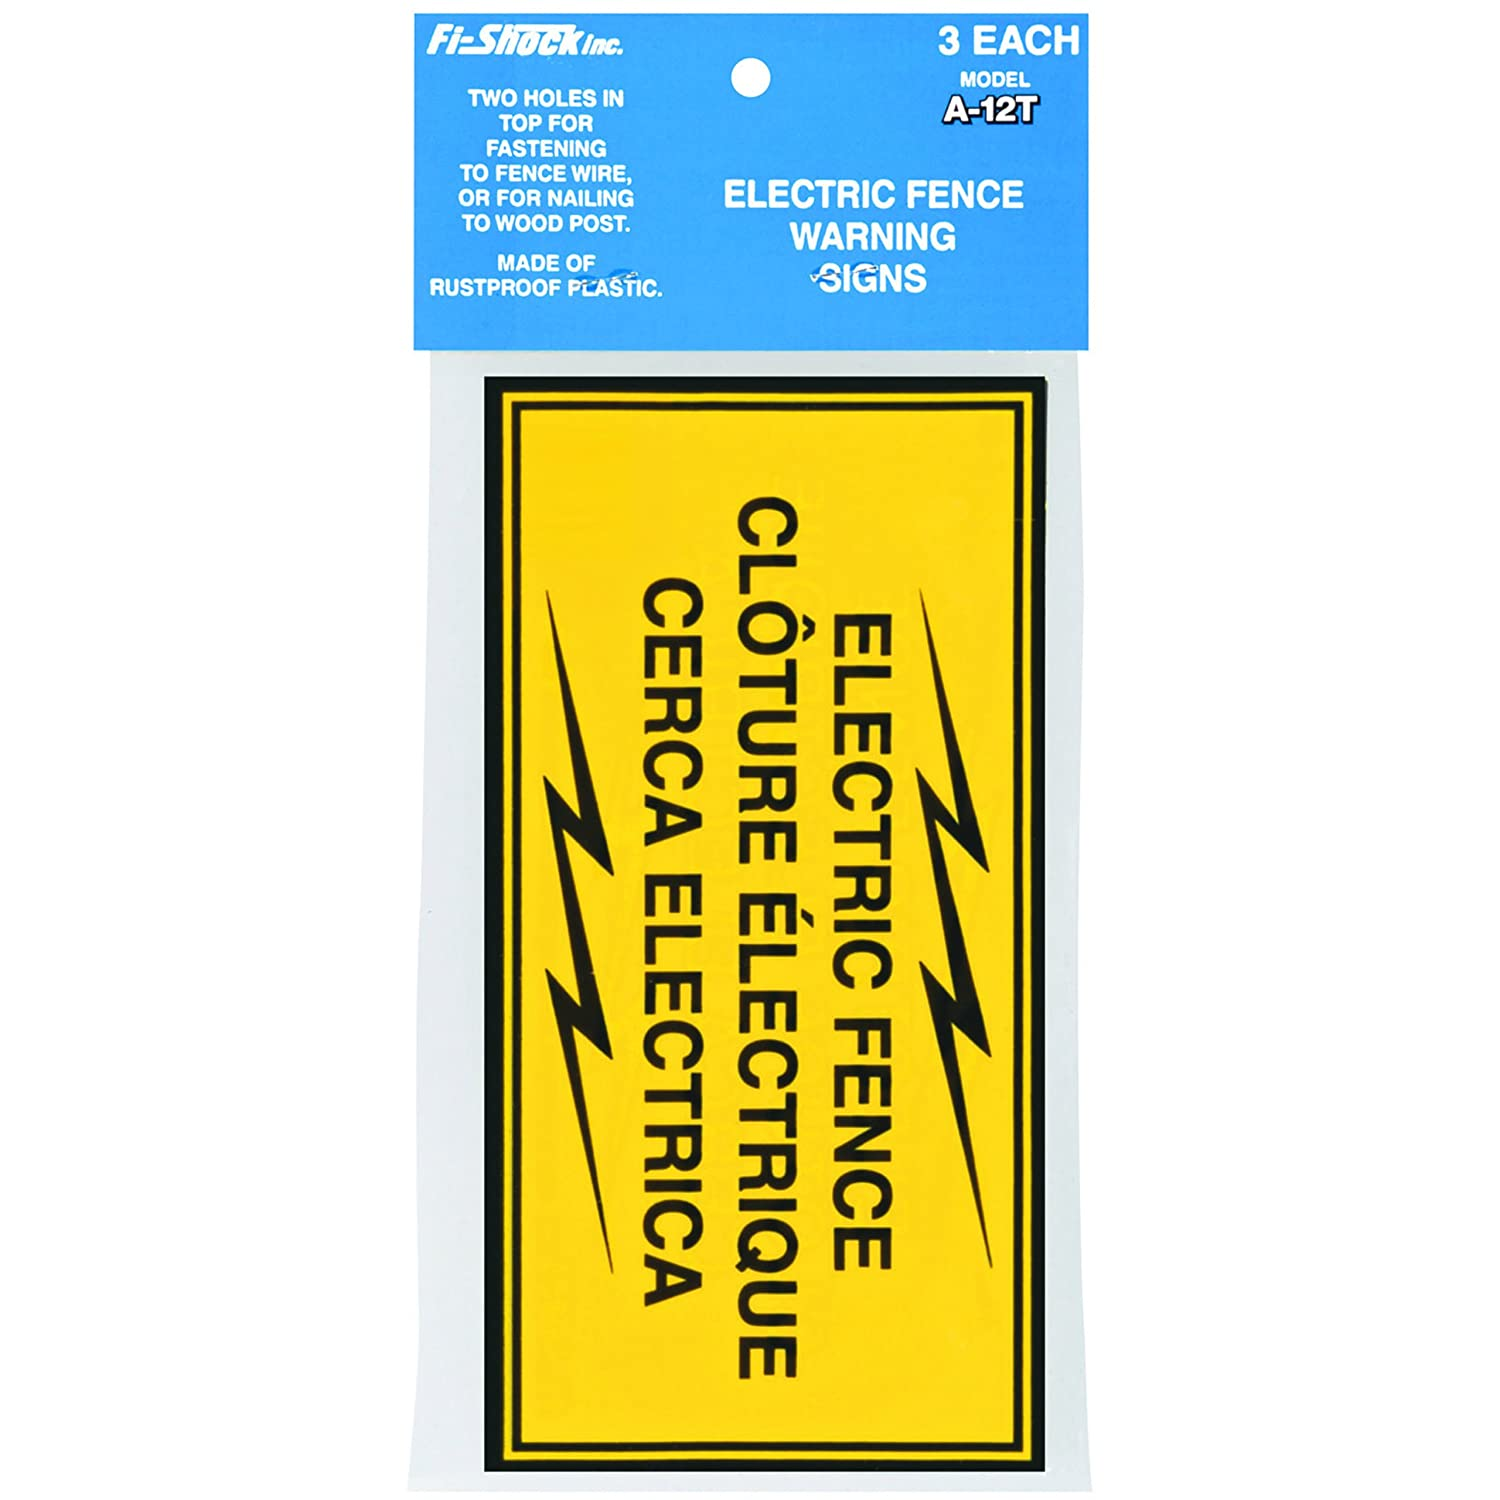 Fi-Shock A-12T 3-Pack Electric Fence Warning Signs 7137128